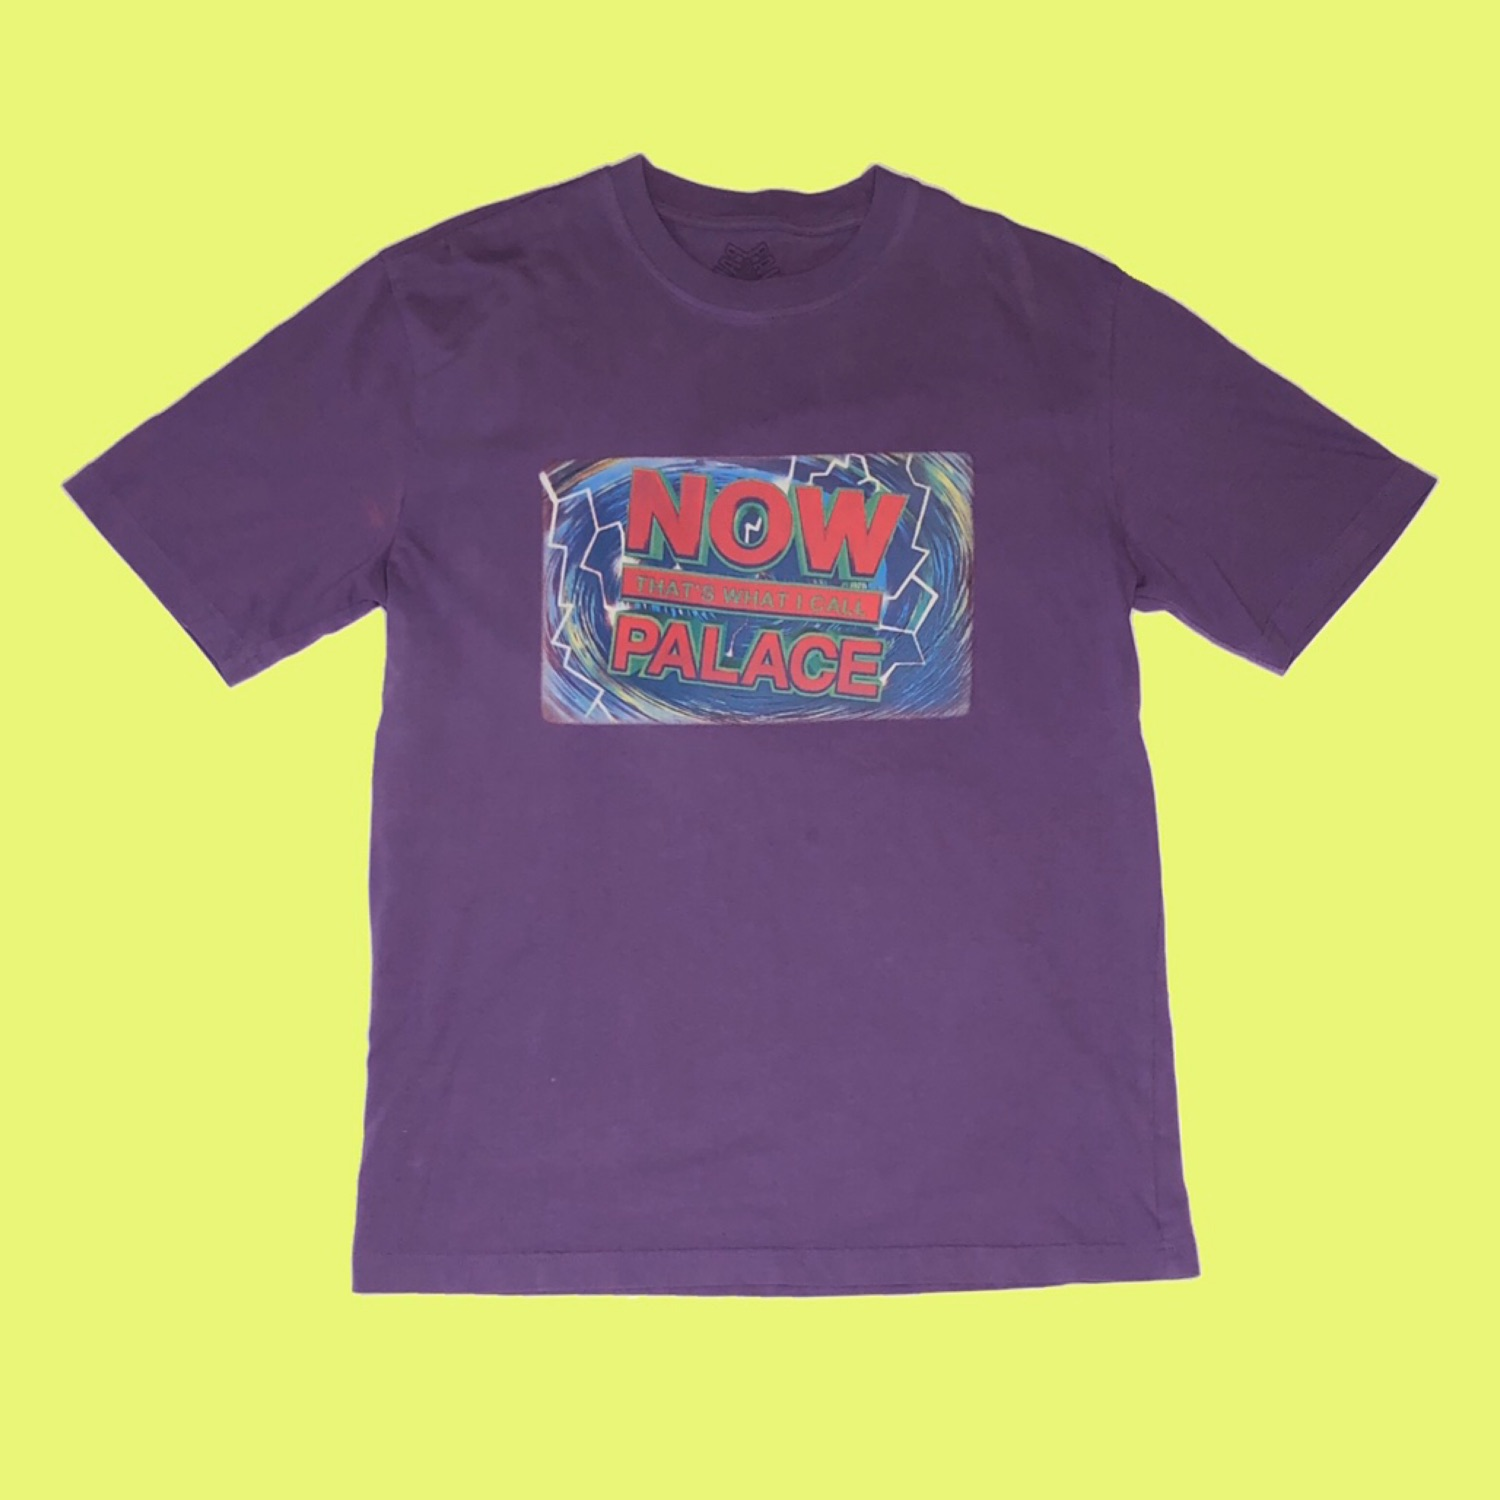 Palace Now That's What I Call Palace T-Shirt Purple